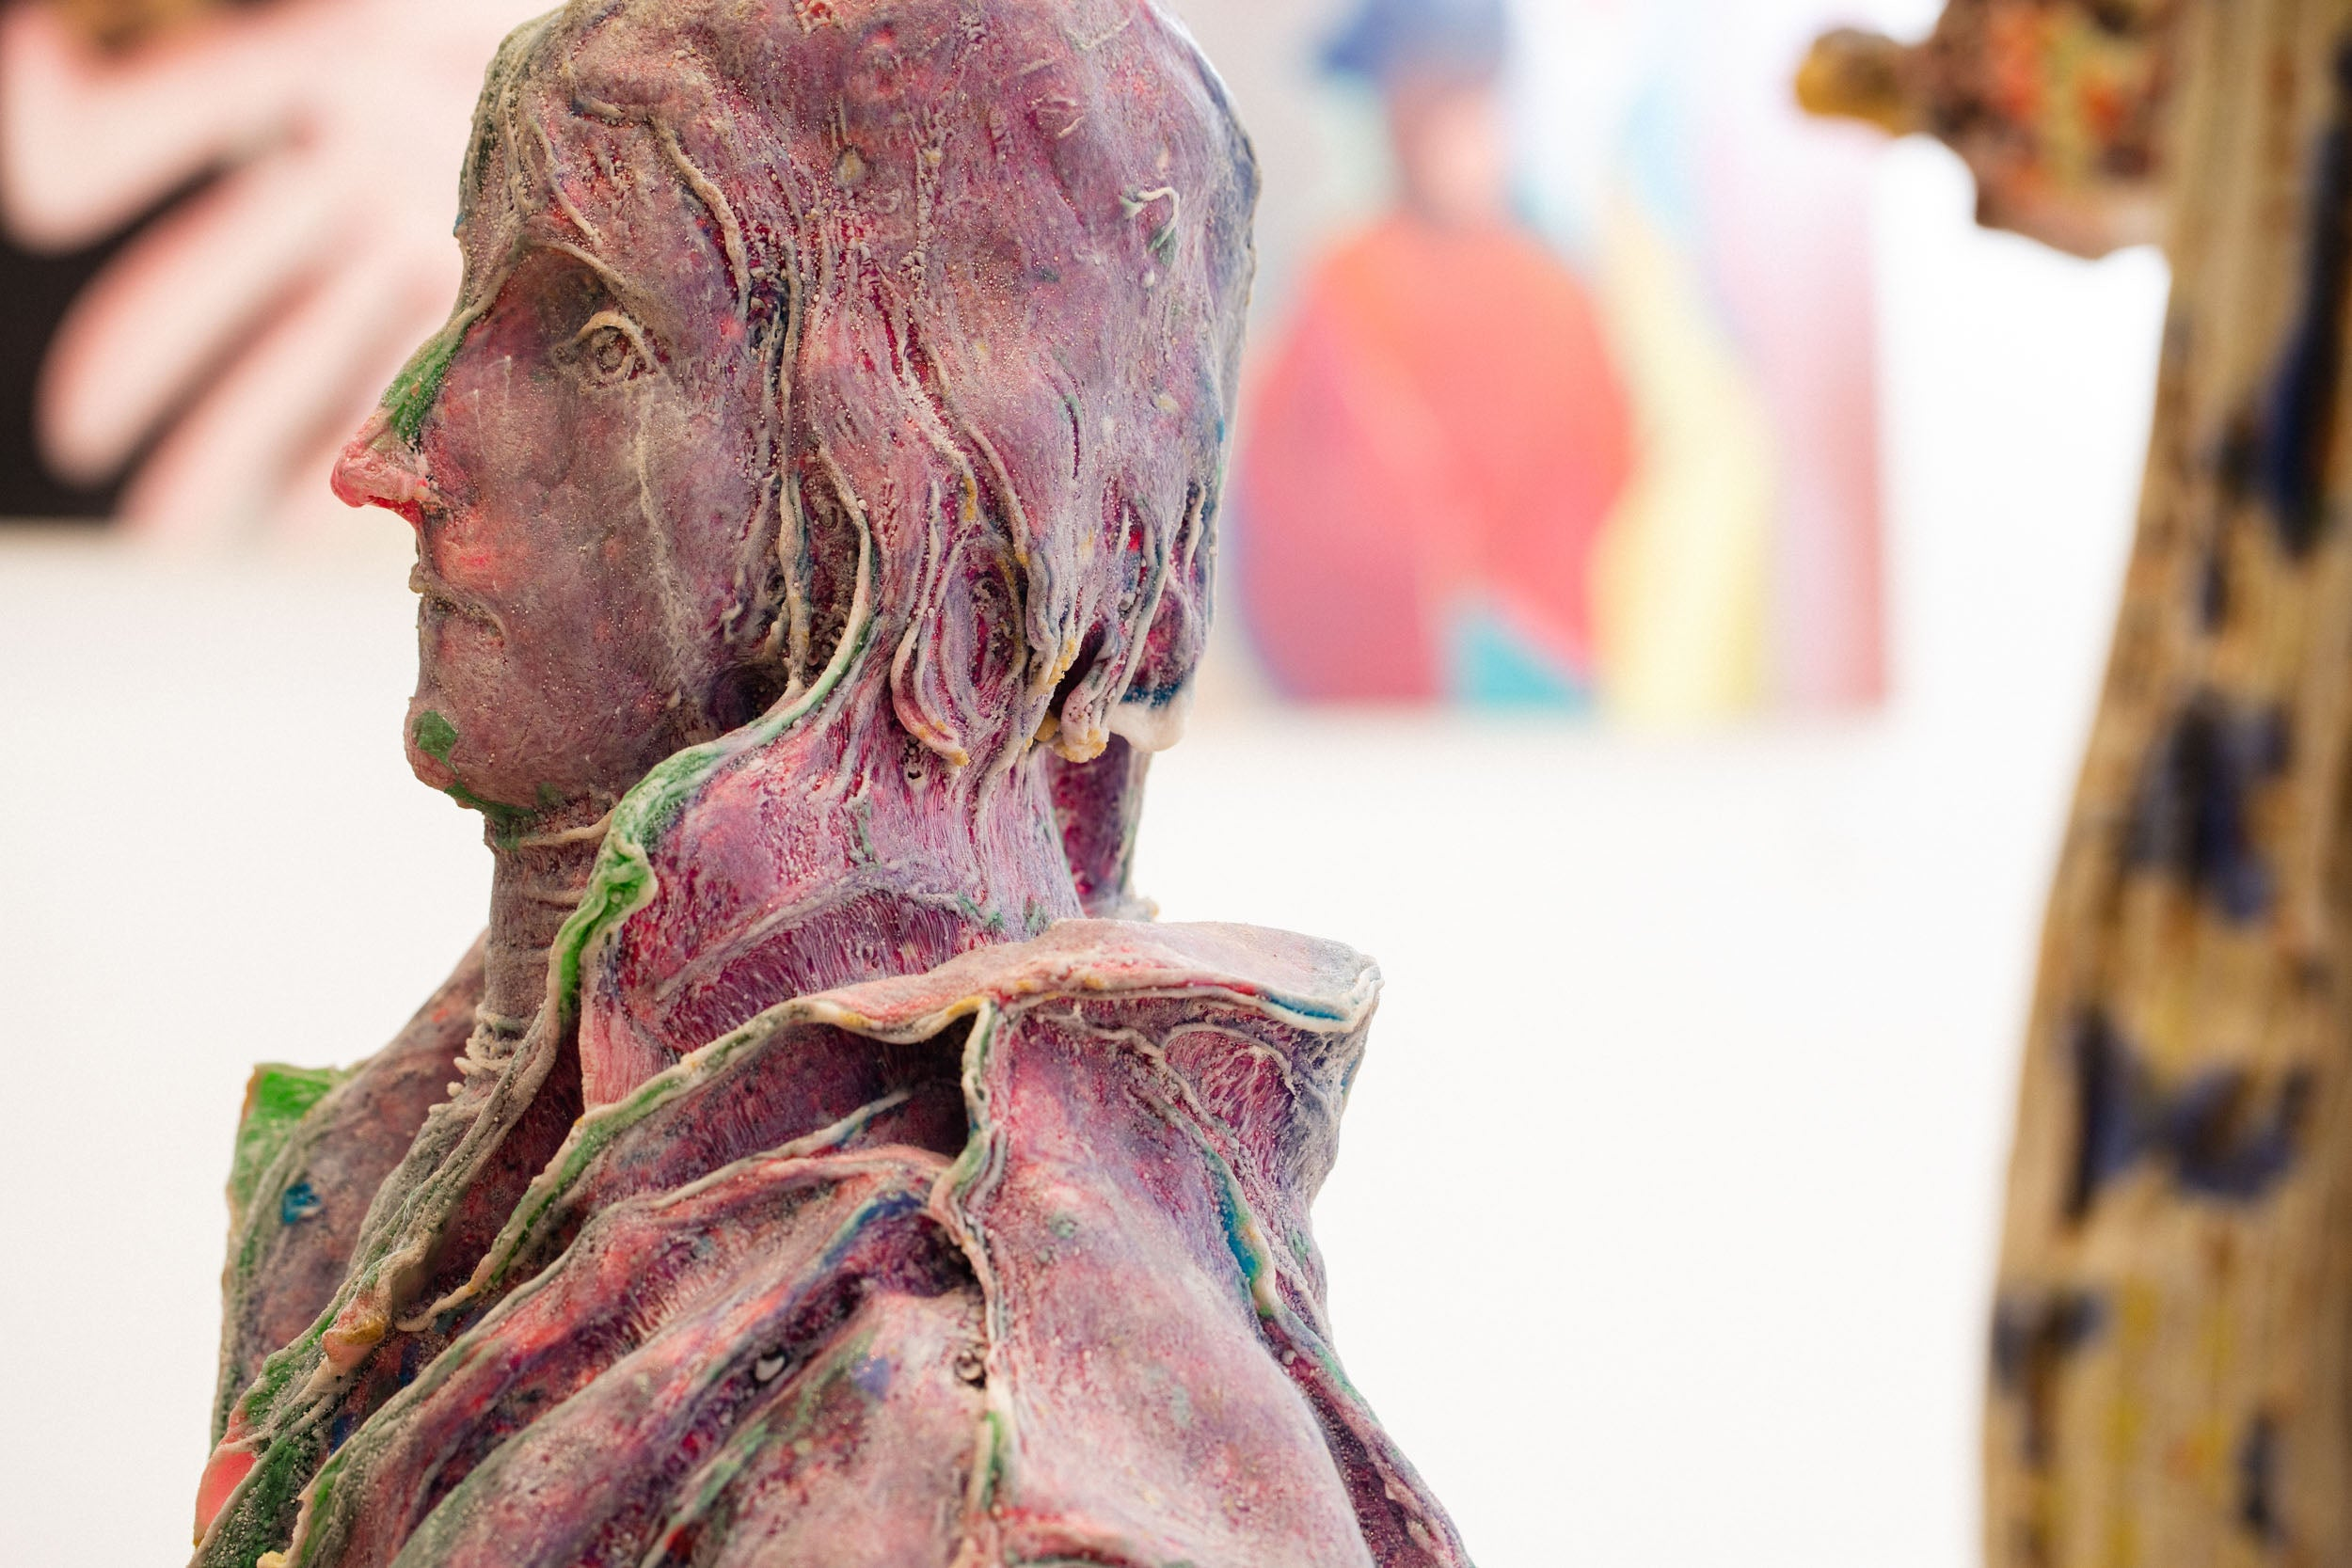 Purple statue in Obsessions: Contemporary Culture with Kevin Poon for A Collected Man London